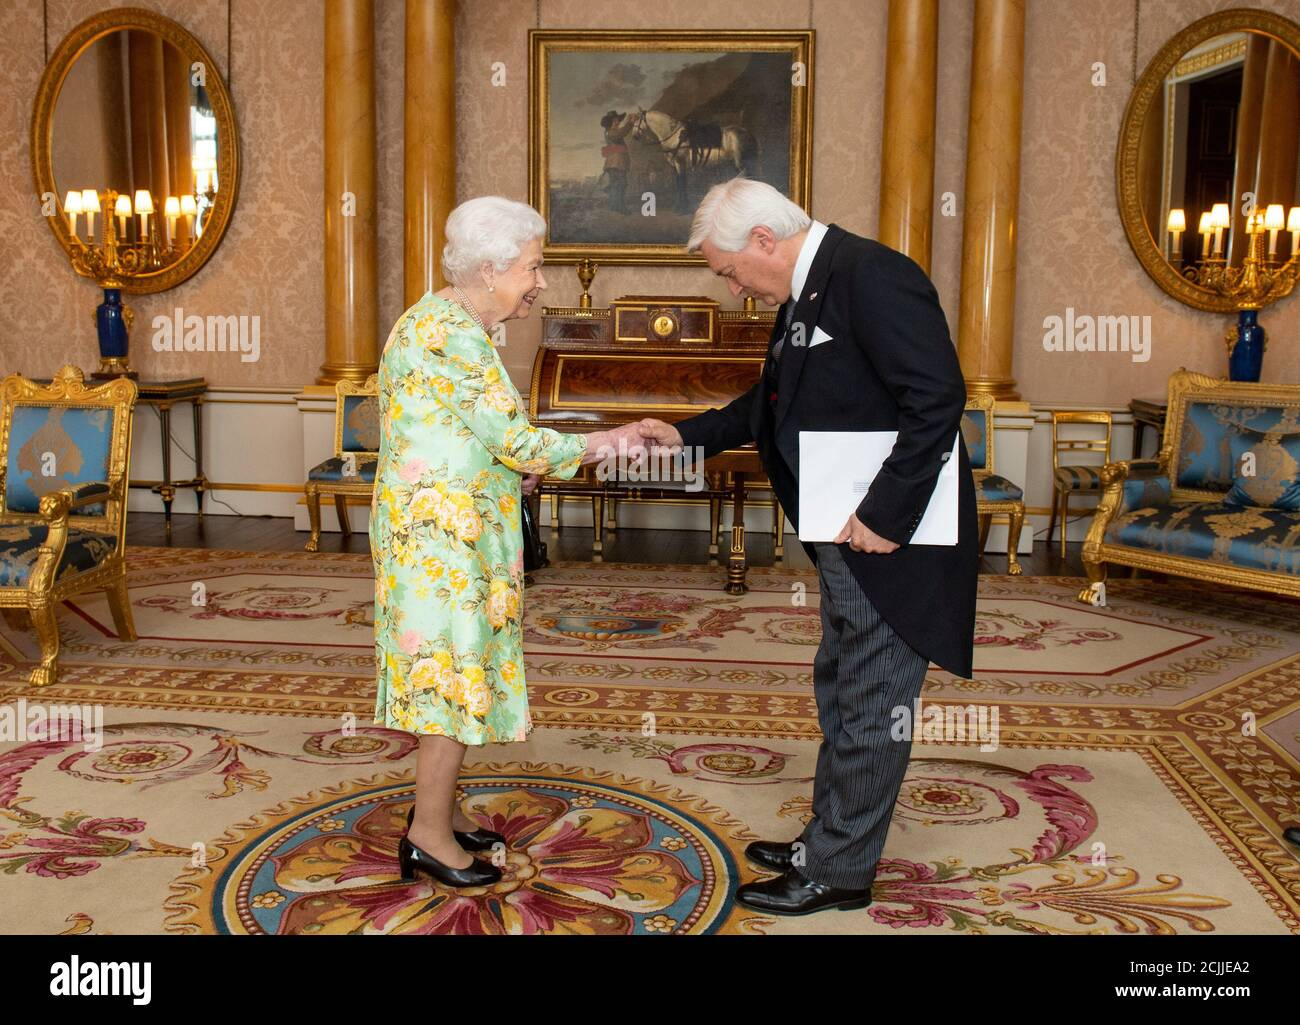 Britain's Queen Elizabeth II meets Ambassador of Norway Wegger Strommen during a private audience at Buckingham Palace in central London, Britain June 25, 2019. Picture taken June 25, 2019. Dominic Lipinski/Pool via REUTERS Stock Photo